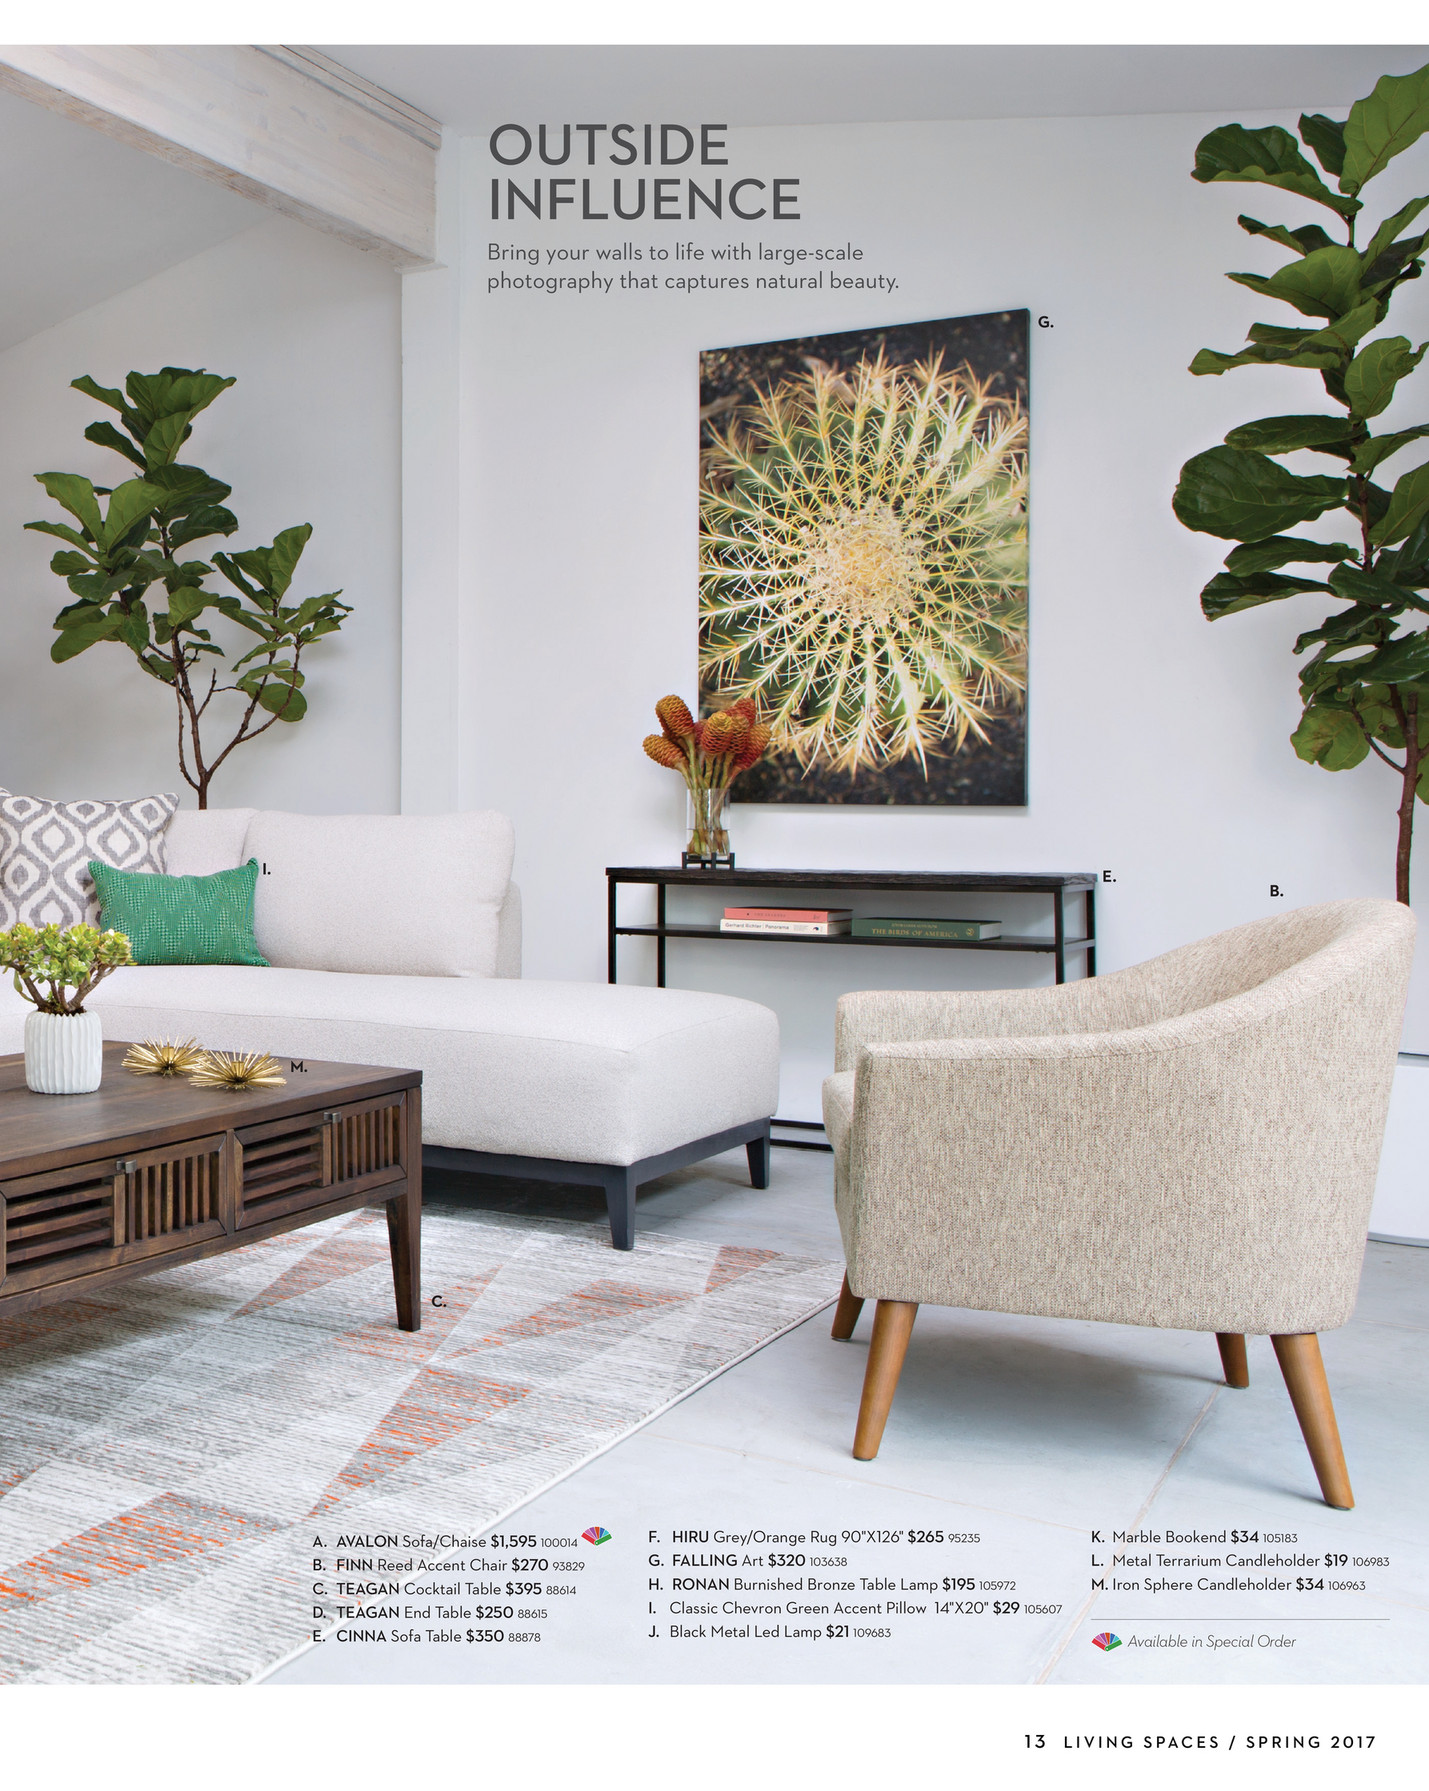 Enjoyable Living Spaces Product Catalog Spring 2017 Finn Reed Unemploymentrelief Wooden Chair Designs For Living Room Unemploymentrelieforg